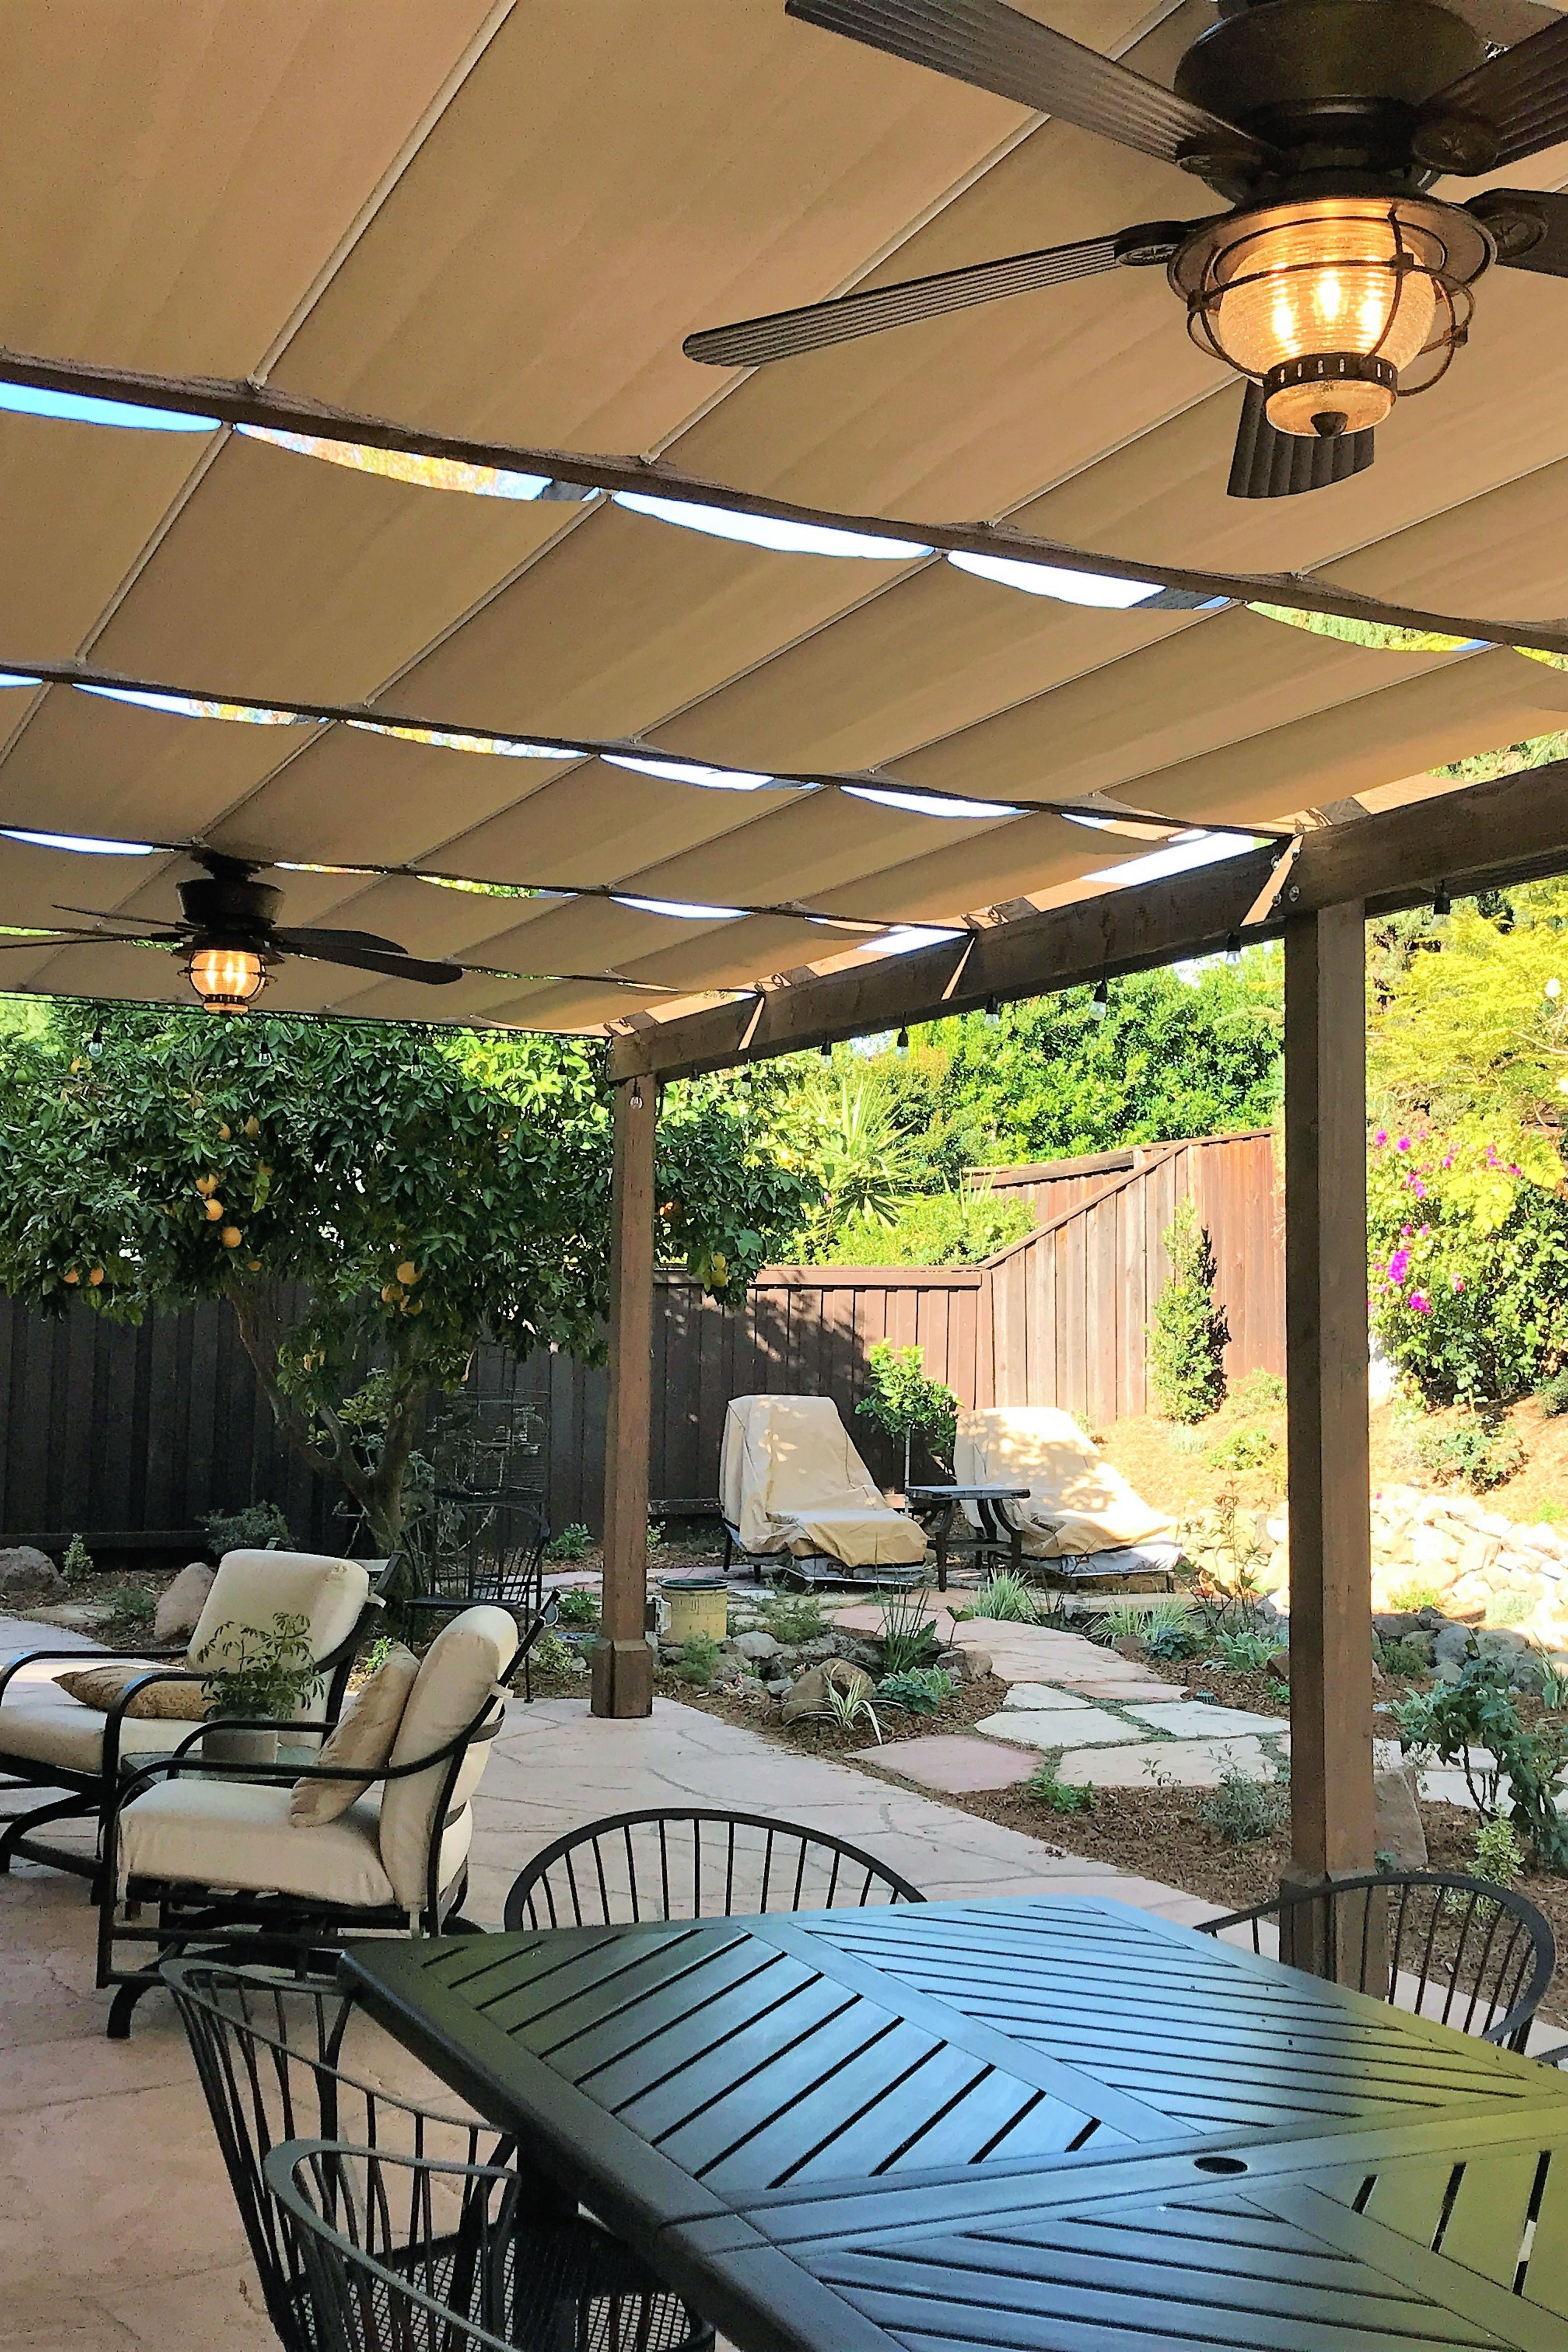 These Are Made From The Top Grade Sunbrella Marina Waterproof Fabrics With 100 S Of Available Colors And Patterns To Choose F Pergola Shade Cover Patio Canopy